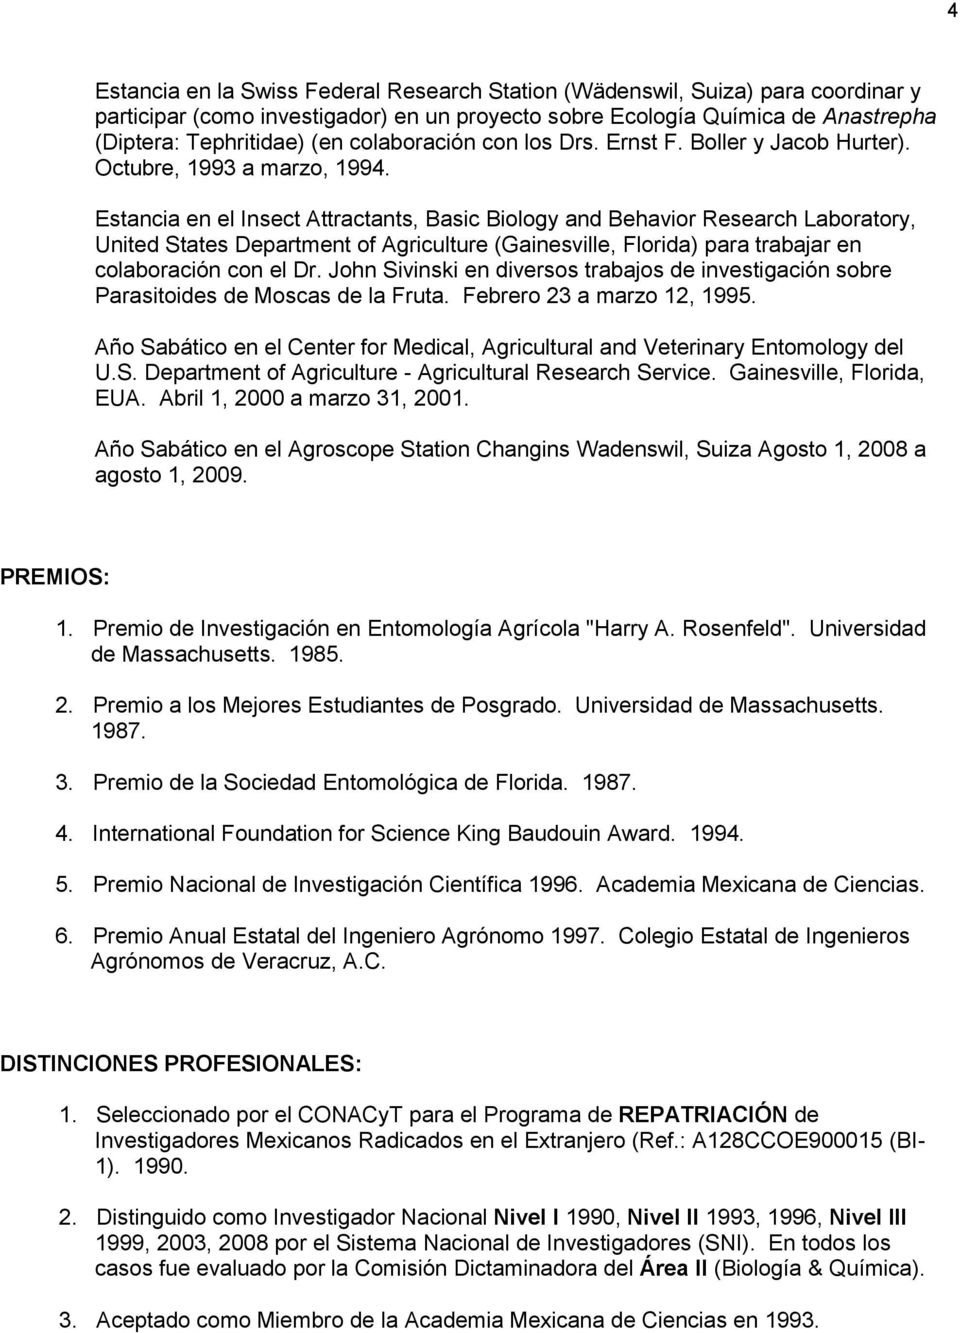 Estancia en el Insect Attractants, Basic Biology and Behavior Research Laboratory, United States Department of Agriculture (Gainesville, Florida) para trabajar en colaboración con el Dr.